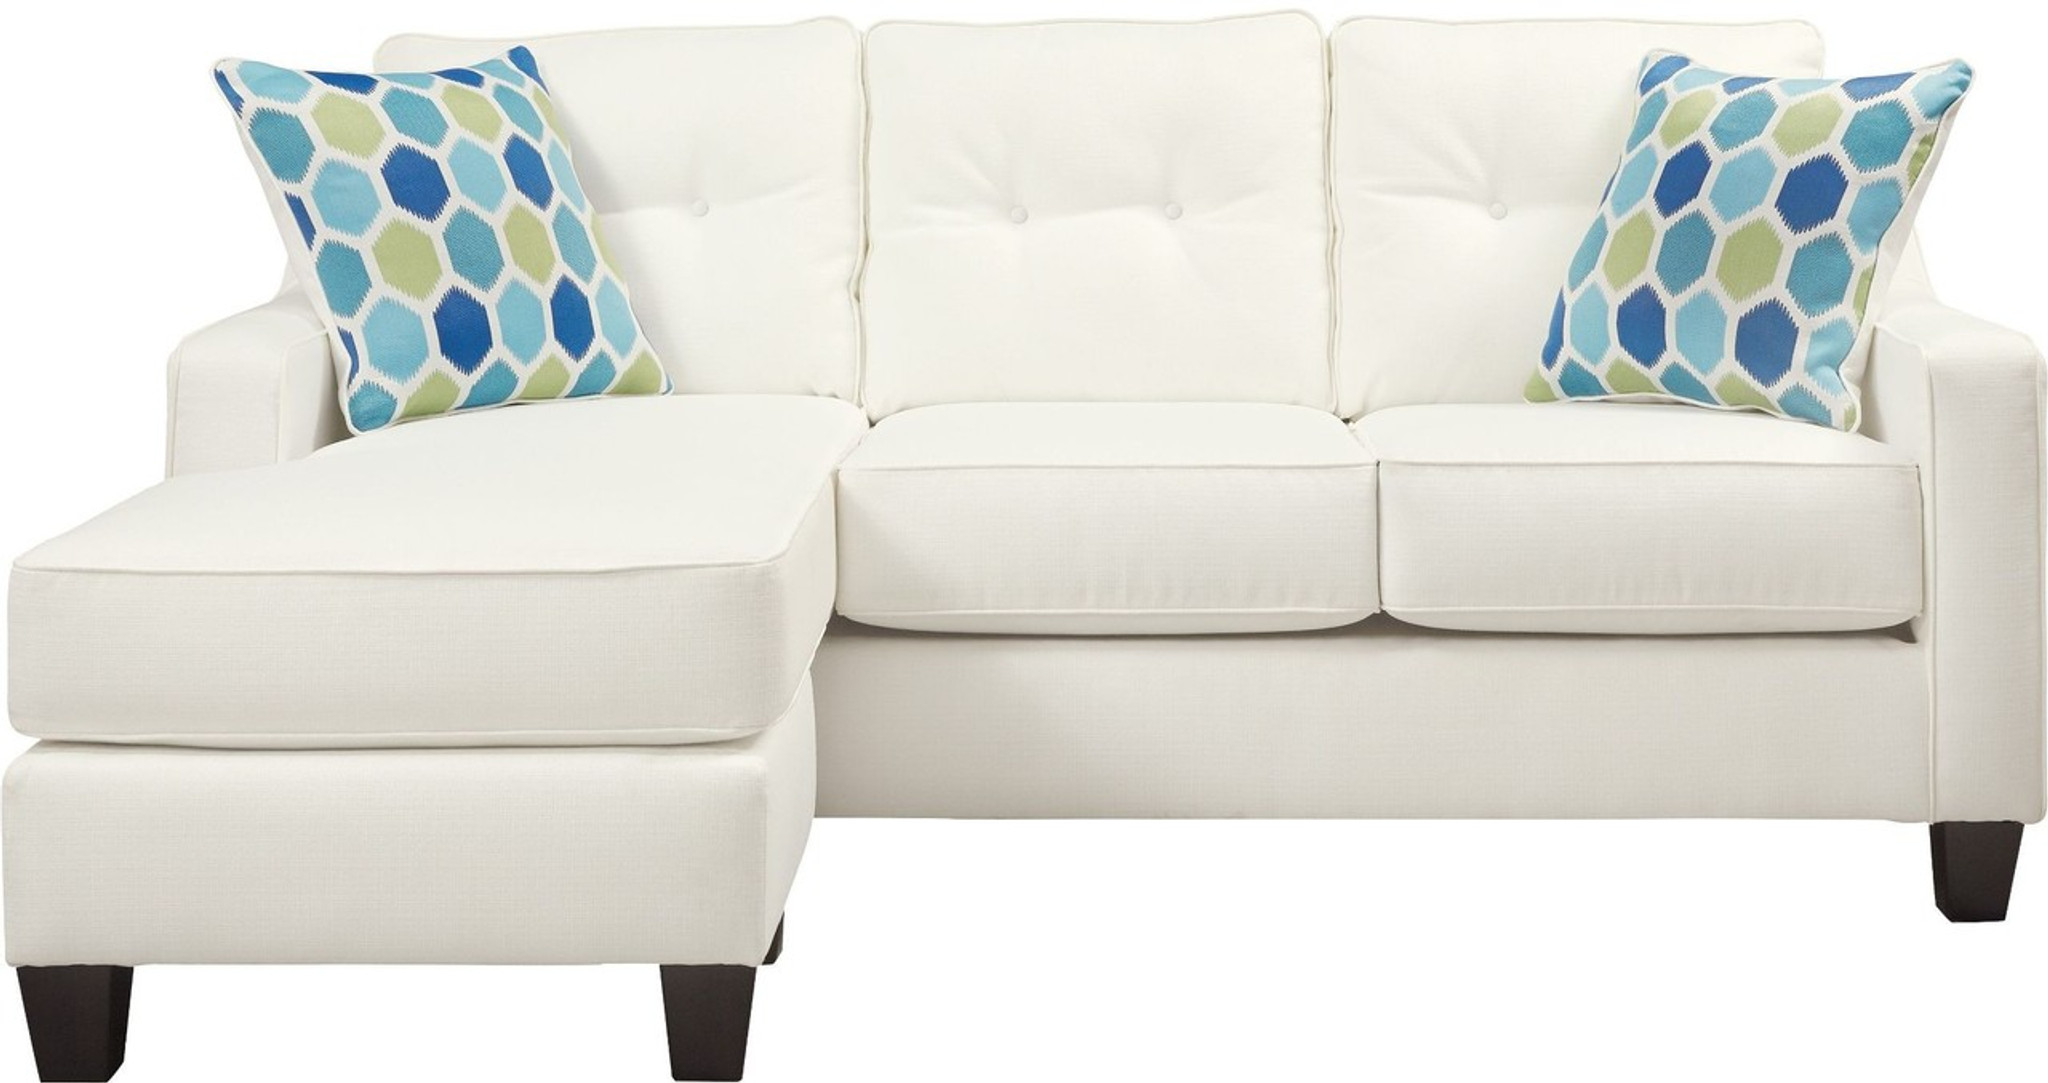 Peachy Aldie Nuvella White Collection Queen Sofa Chaise Sleeper Home Interior And Landscaping Ologienasavecom